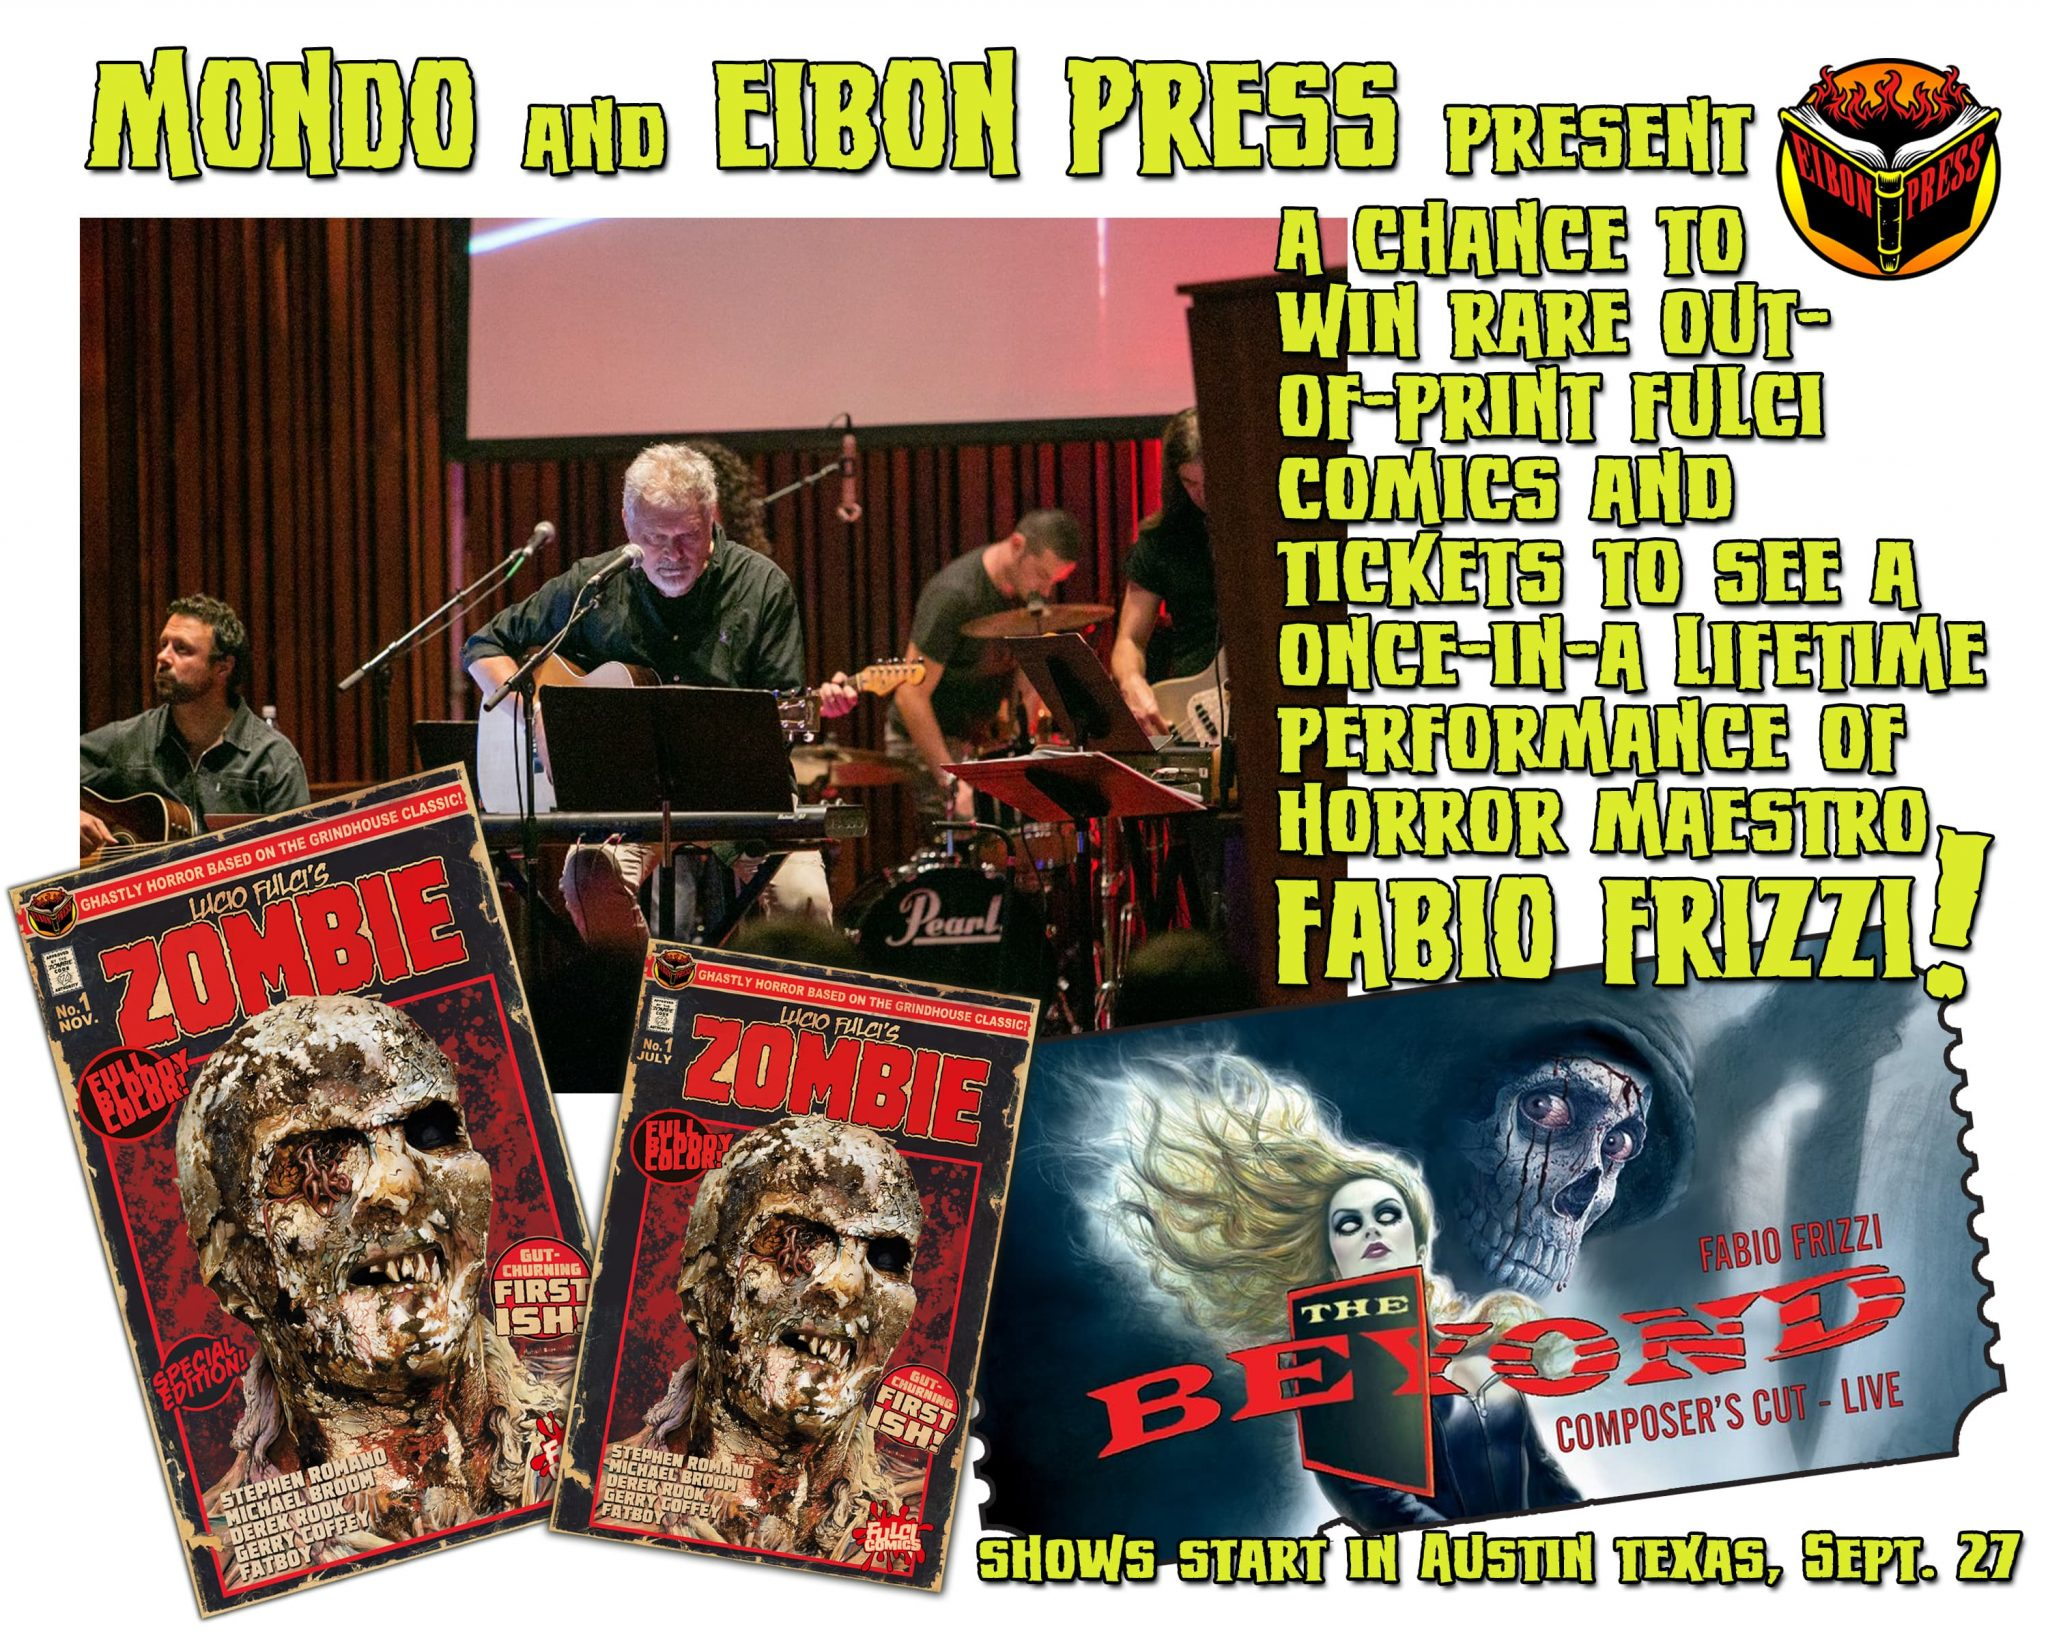 FRIZZI EIBON MONDO PROMO min - Win Rare FULCI COMICS and Tickets to See FABIO FRIZZI LIVE!